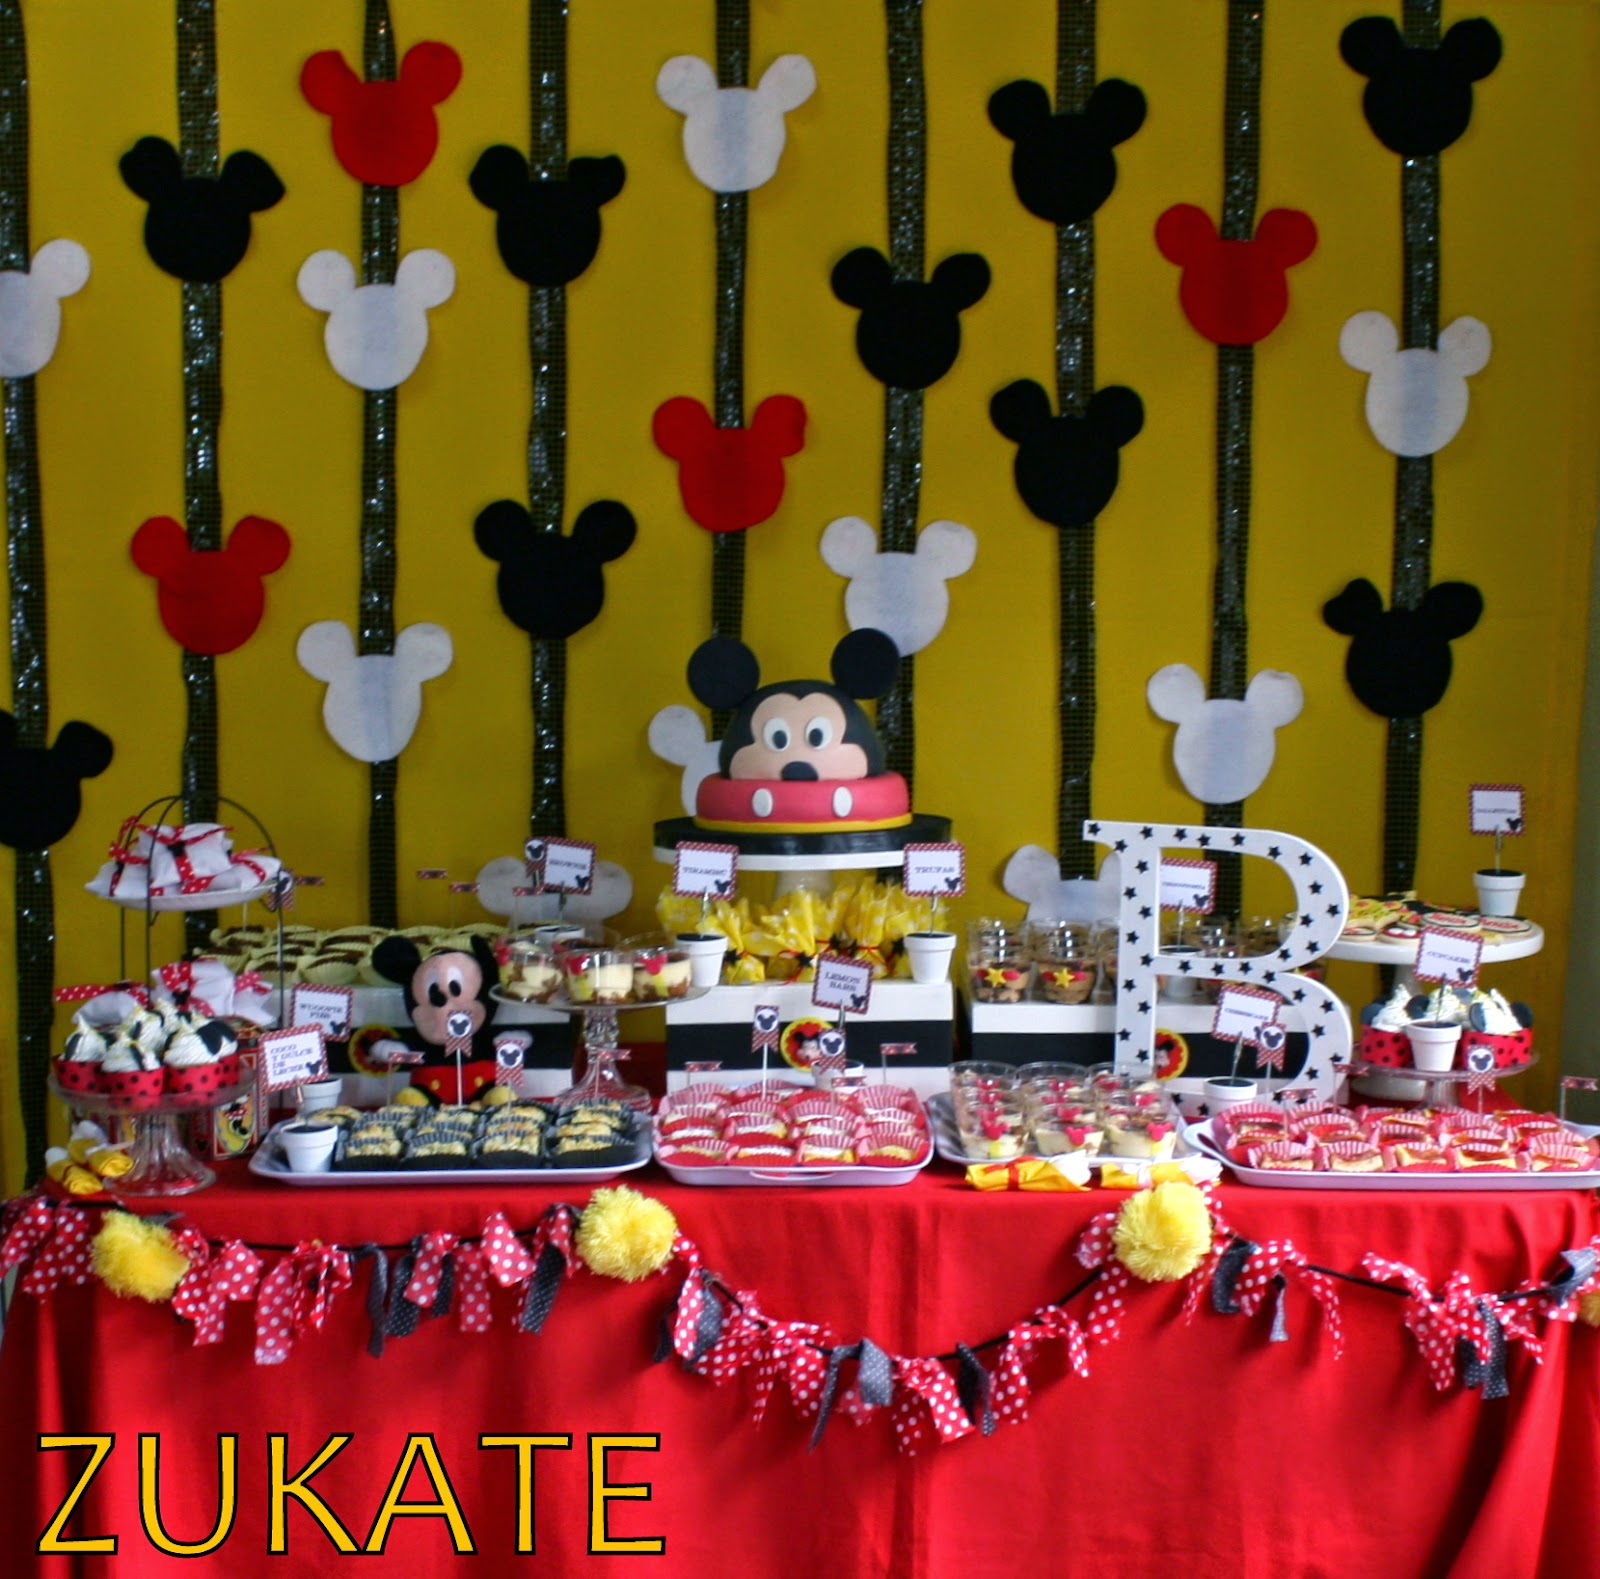 Fiesta de mickey mouse para benjam n zukate for Decoracion de i